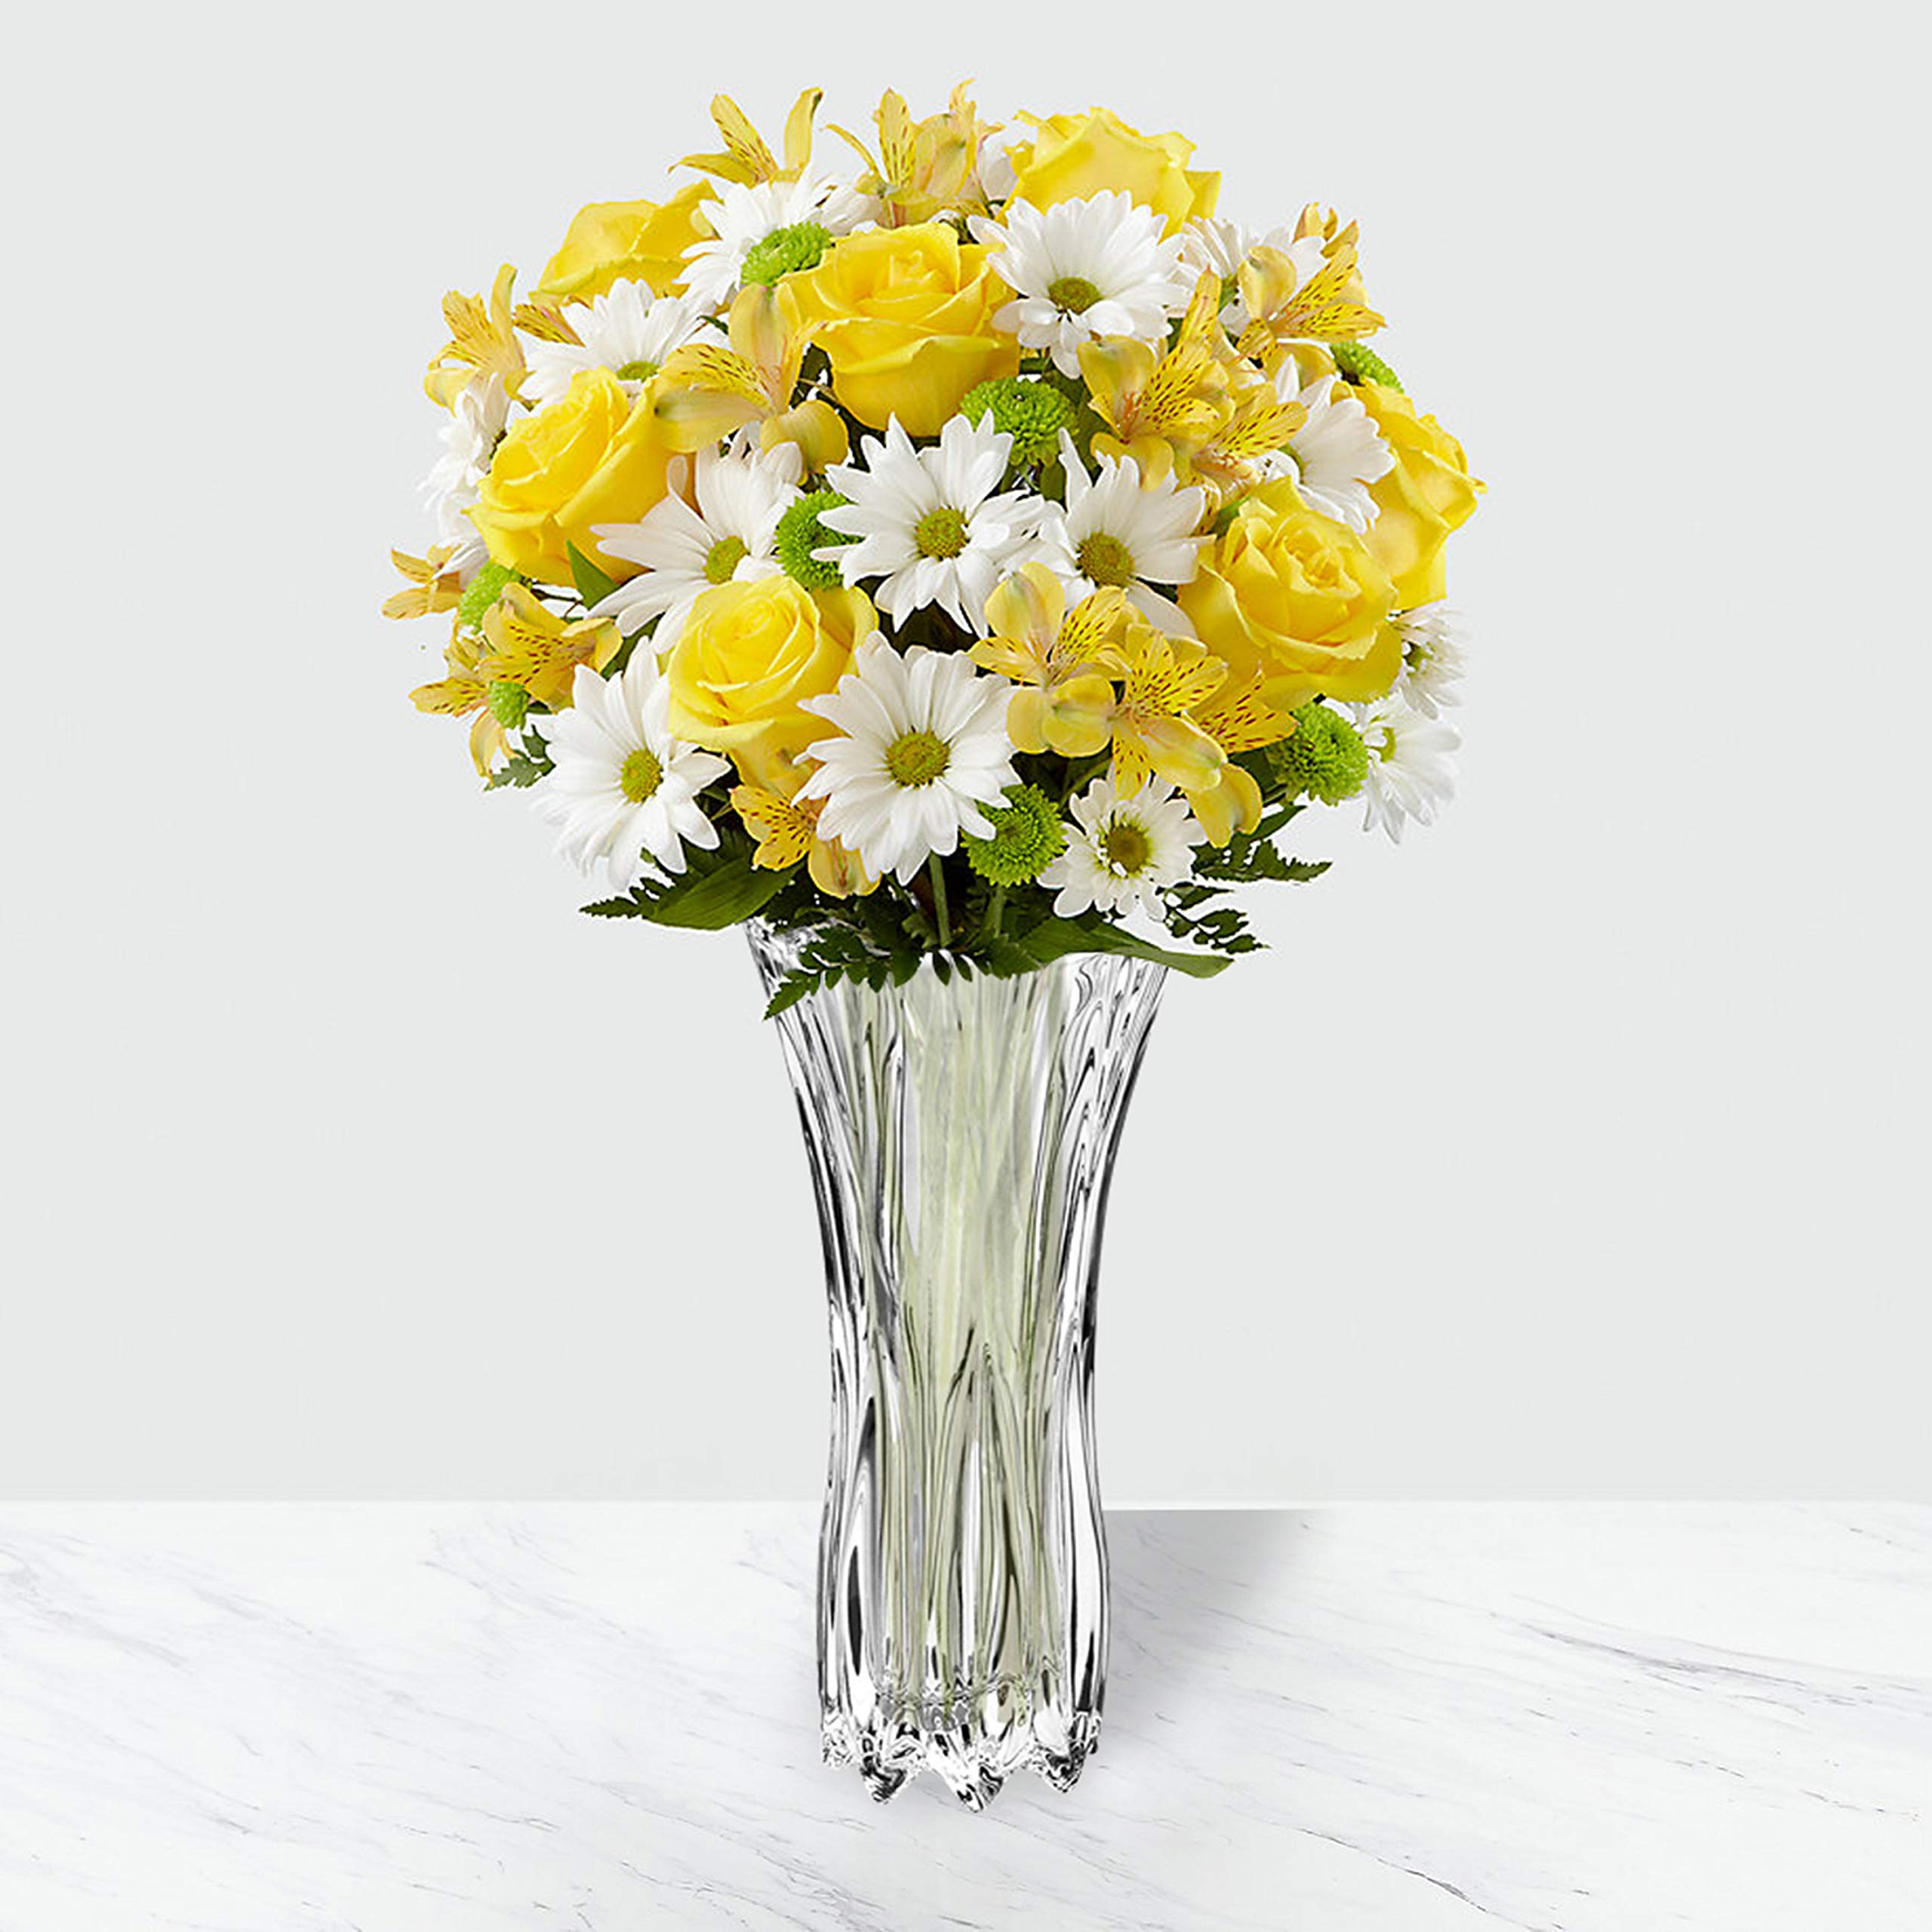 225 & Tall Vases For Flowers: Amazon.co.uk